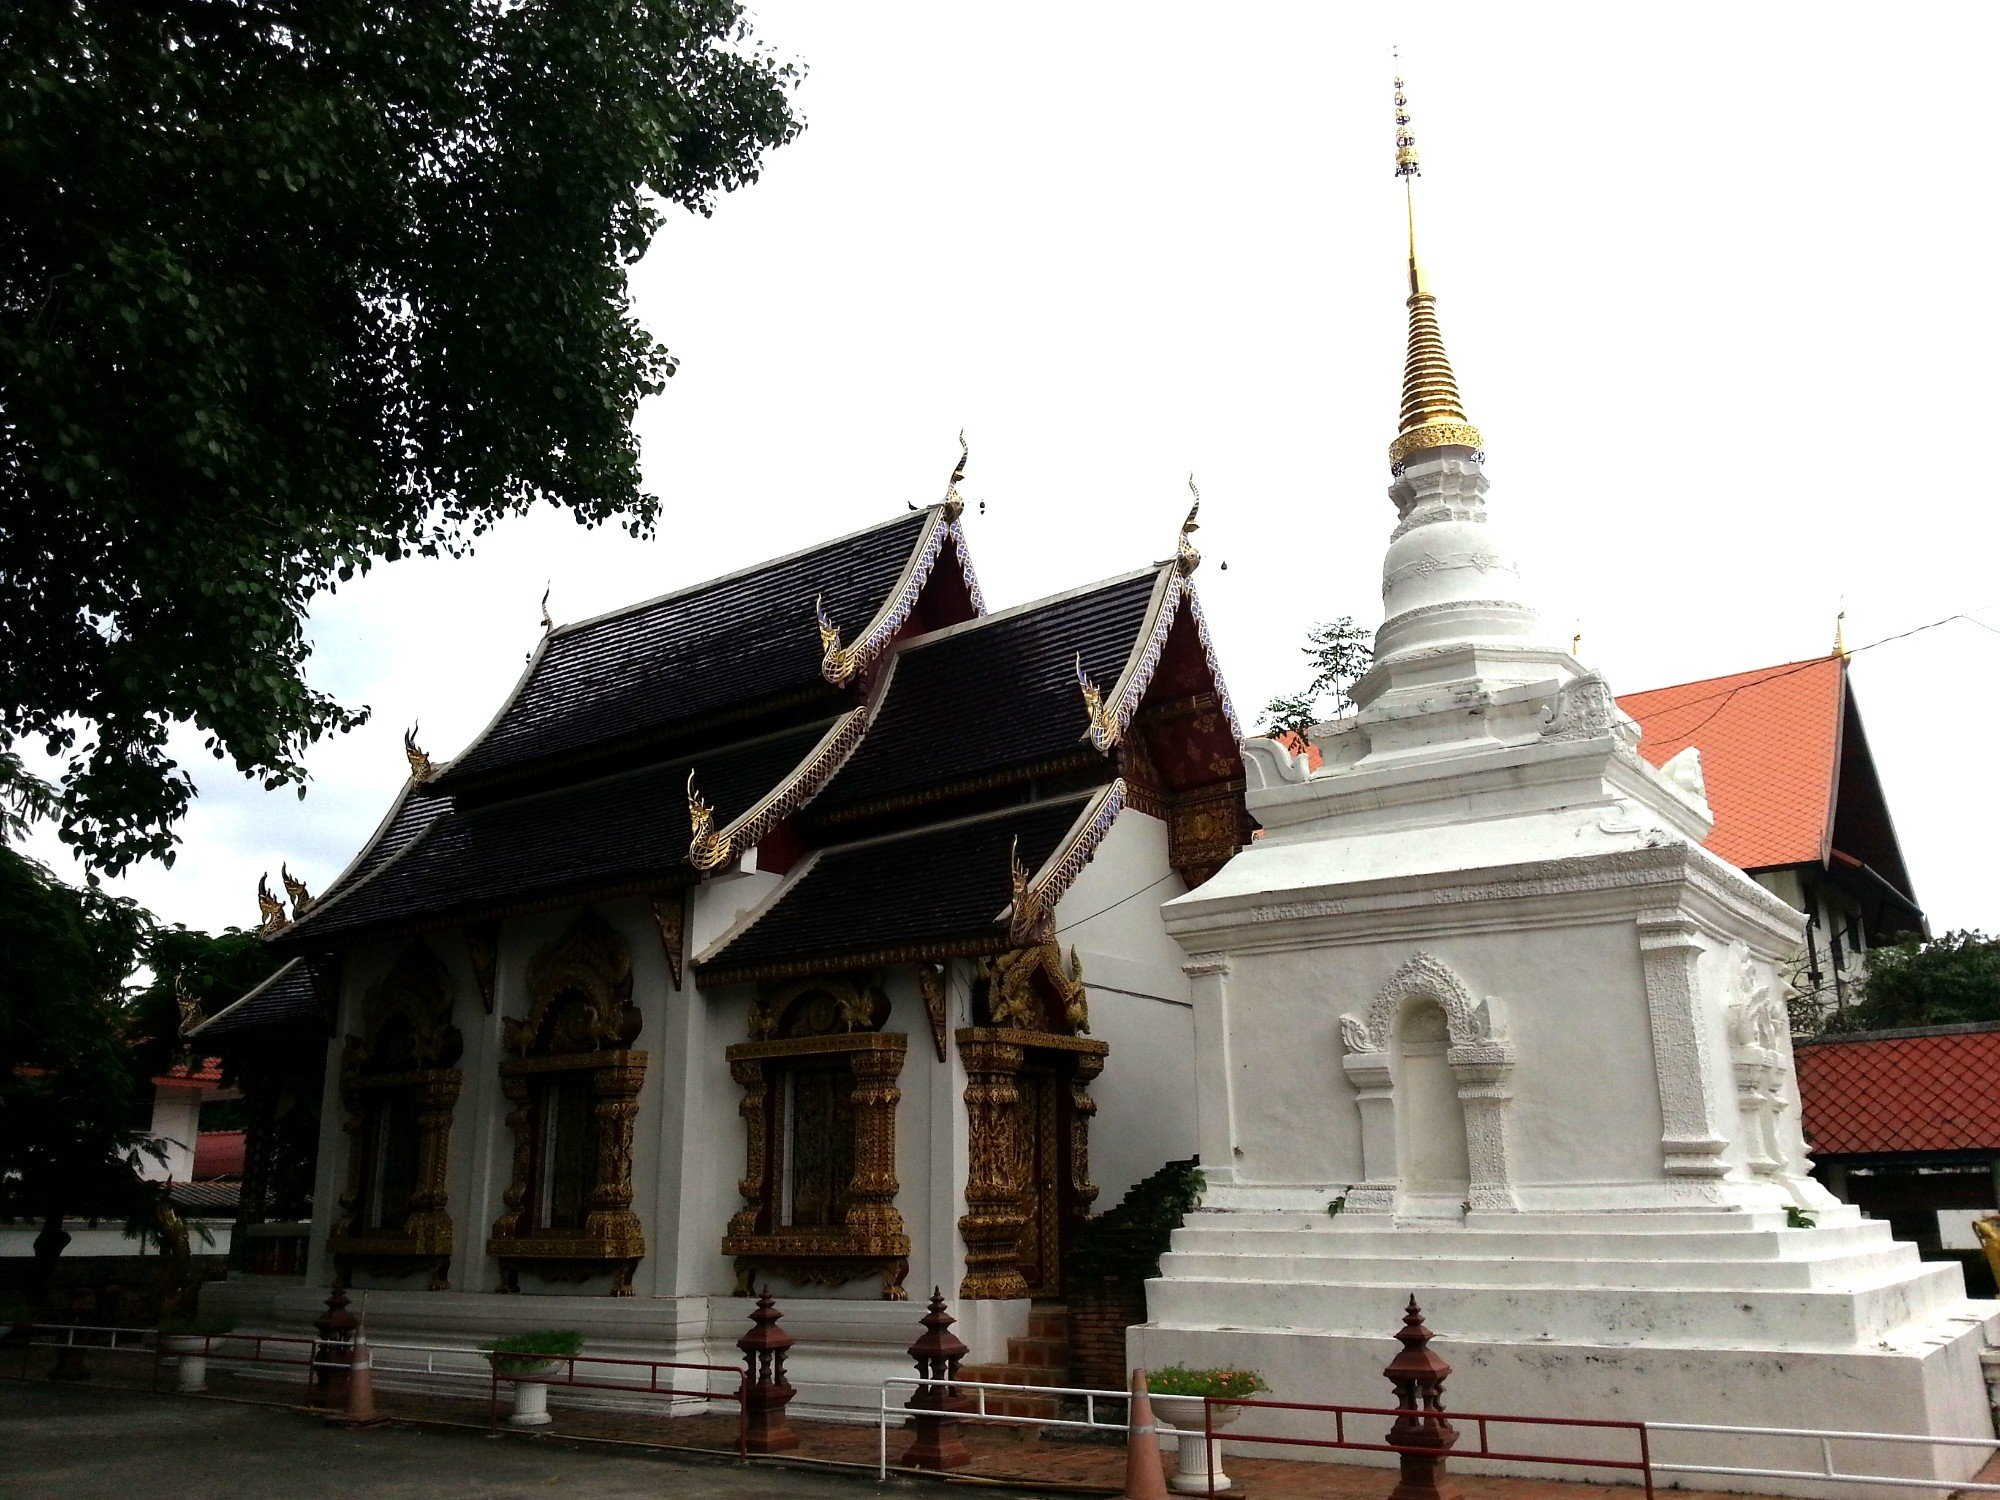 Ordination Hall and second chedi at Wat Prasat